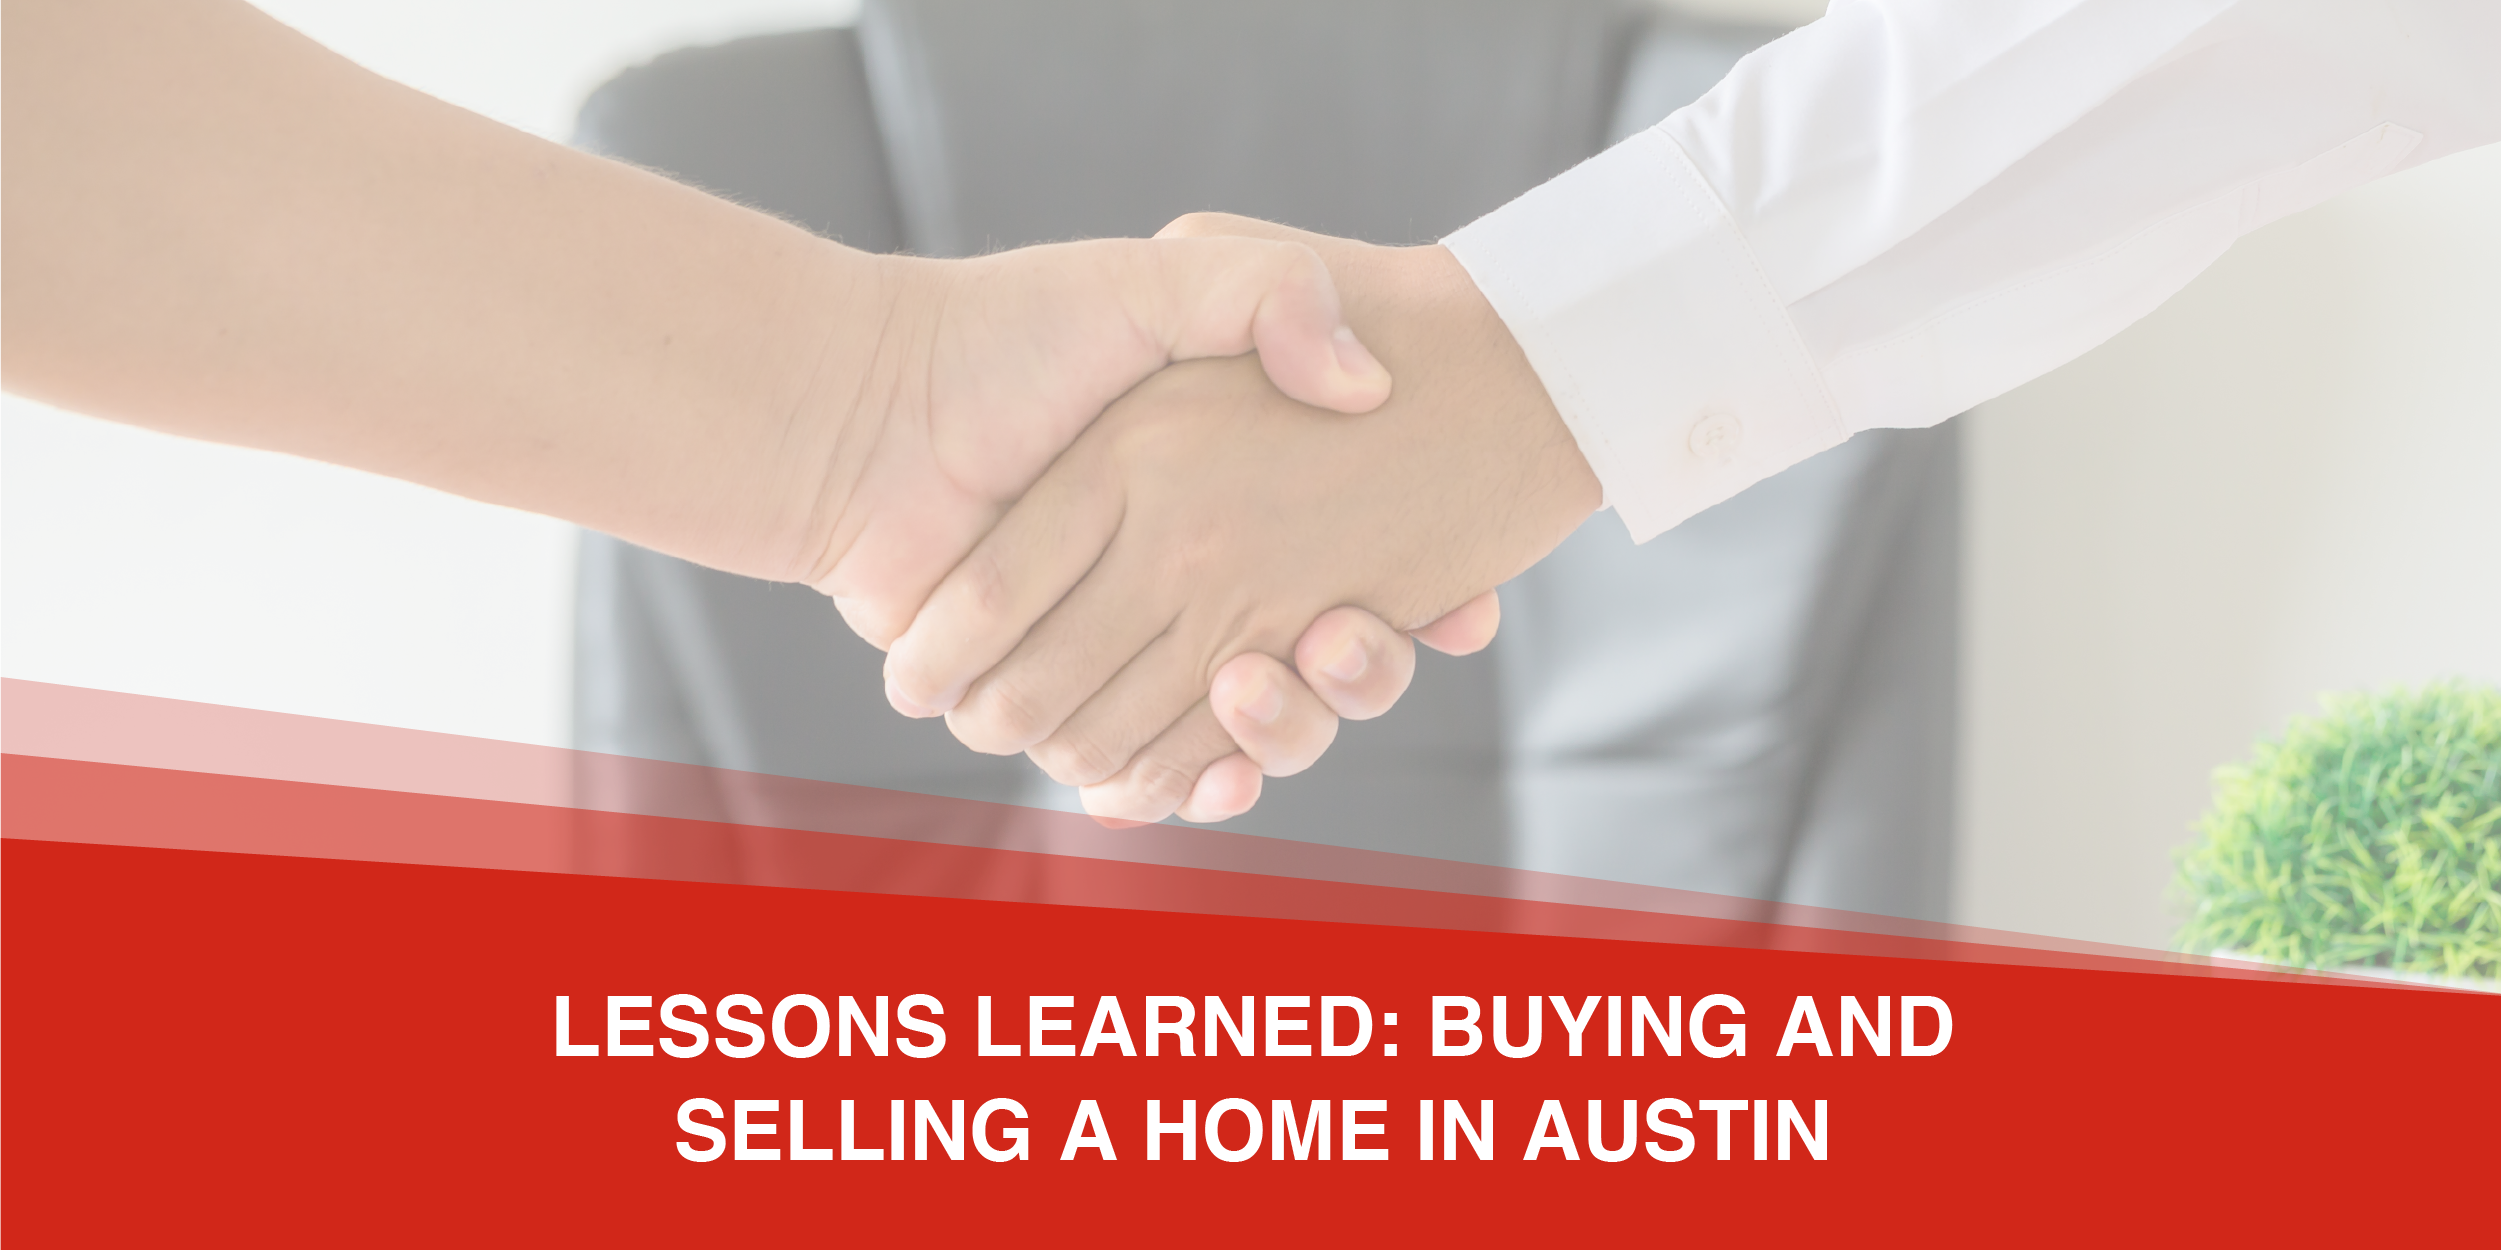 Lessons Learned: Buying and Selling a Home in the Austin Area